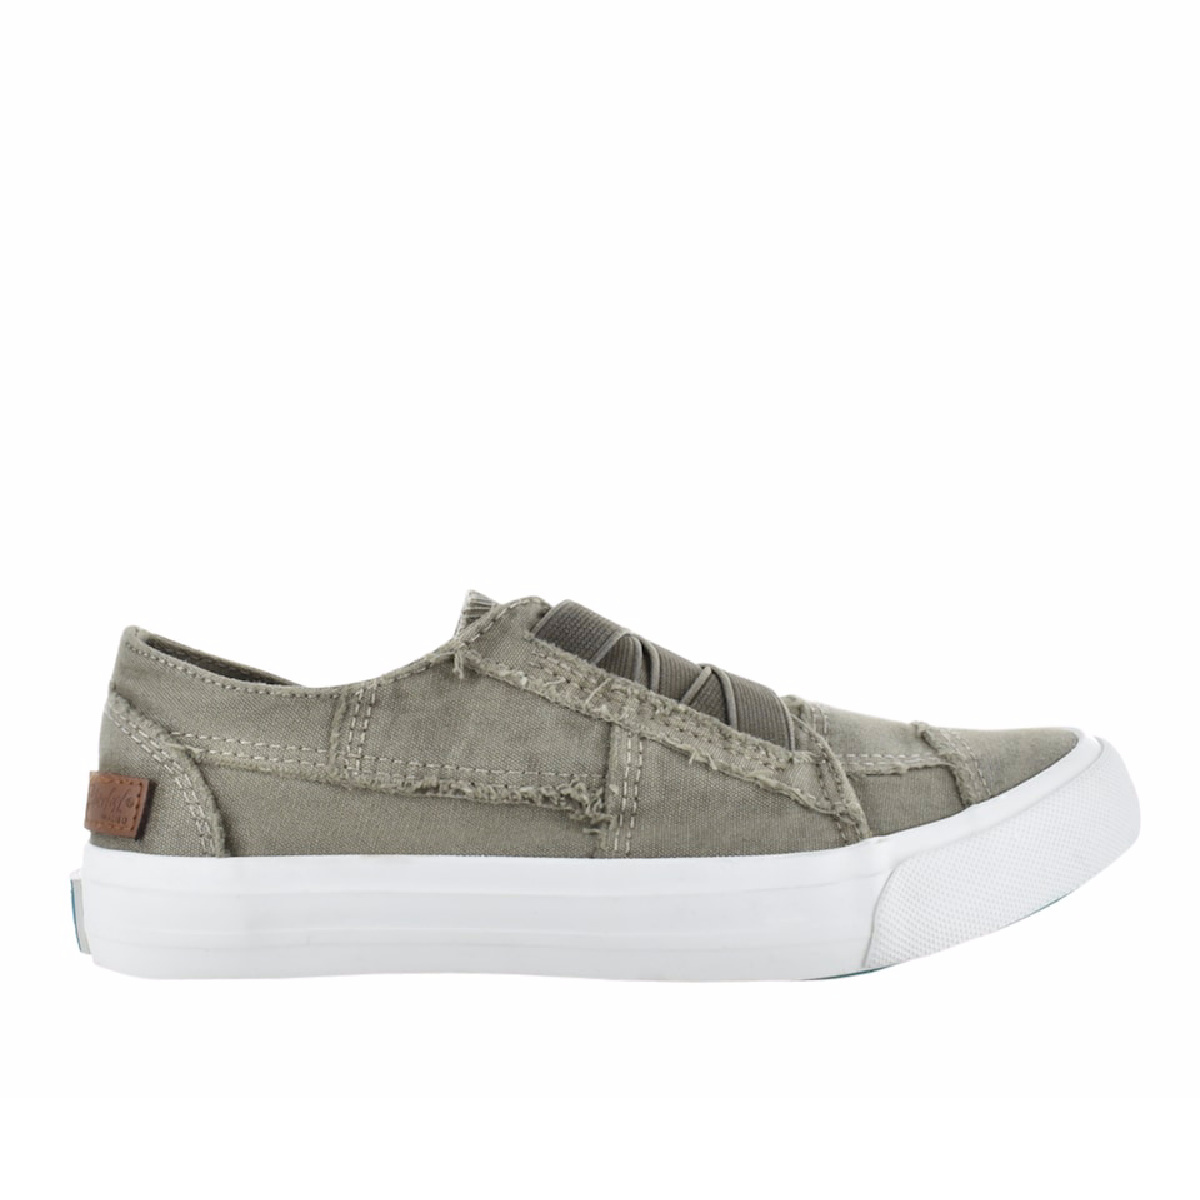 Blowfish Malibu Blowfish Women's Marley Sweet Grey